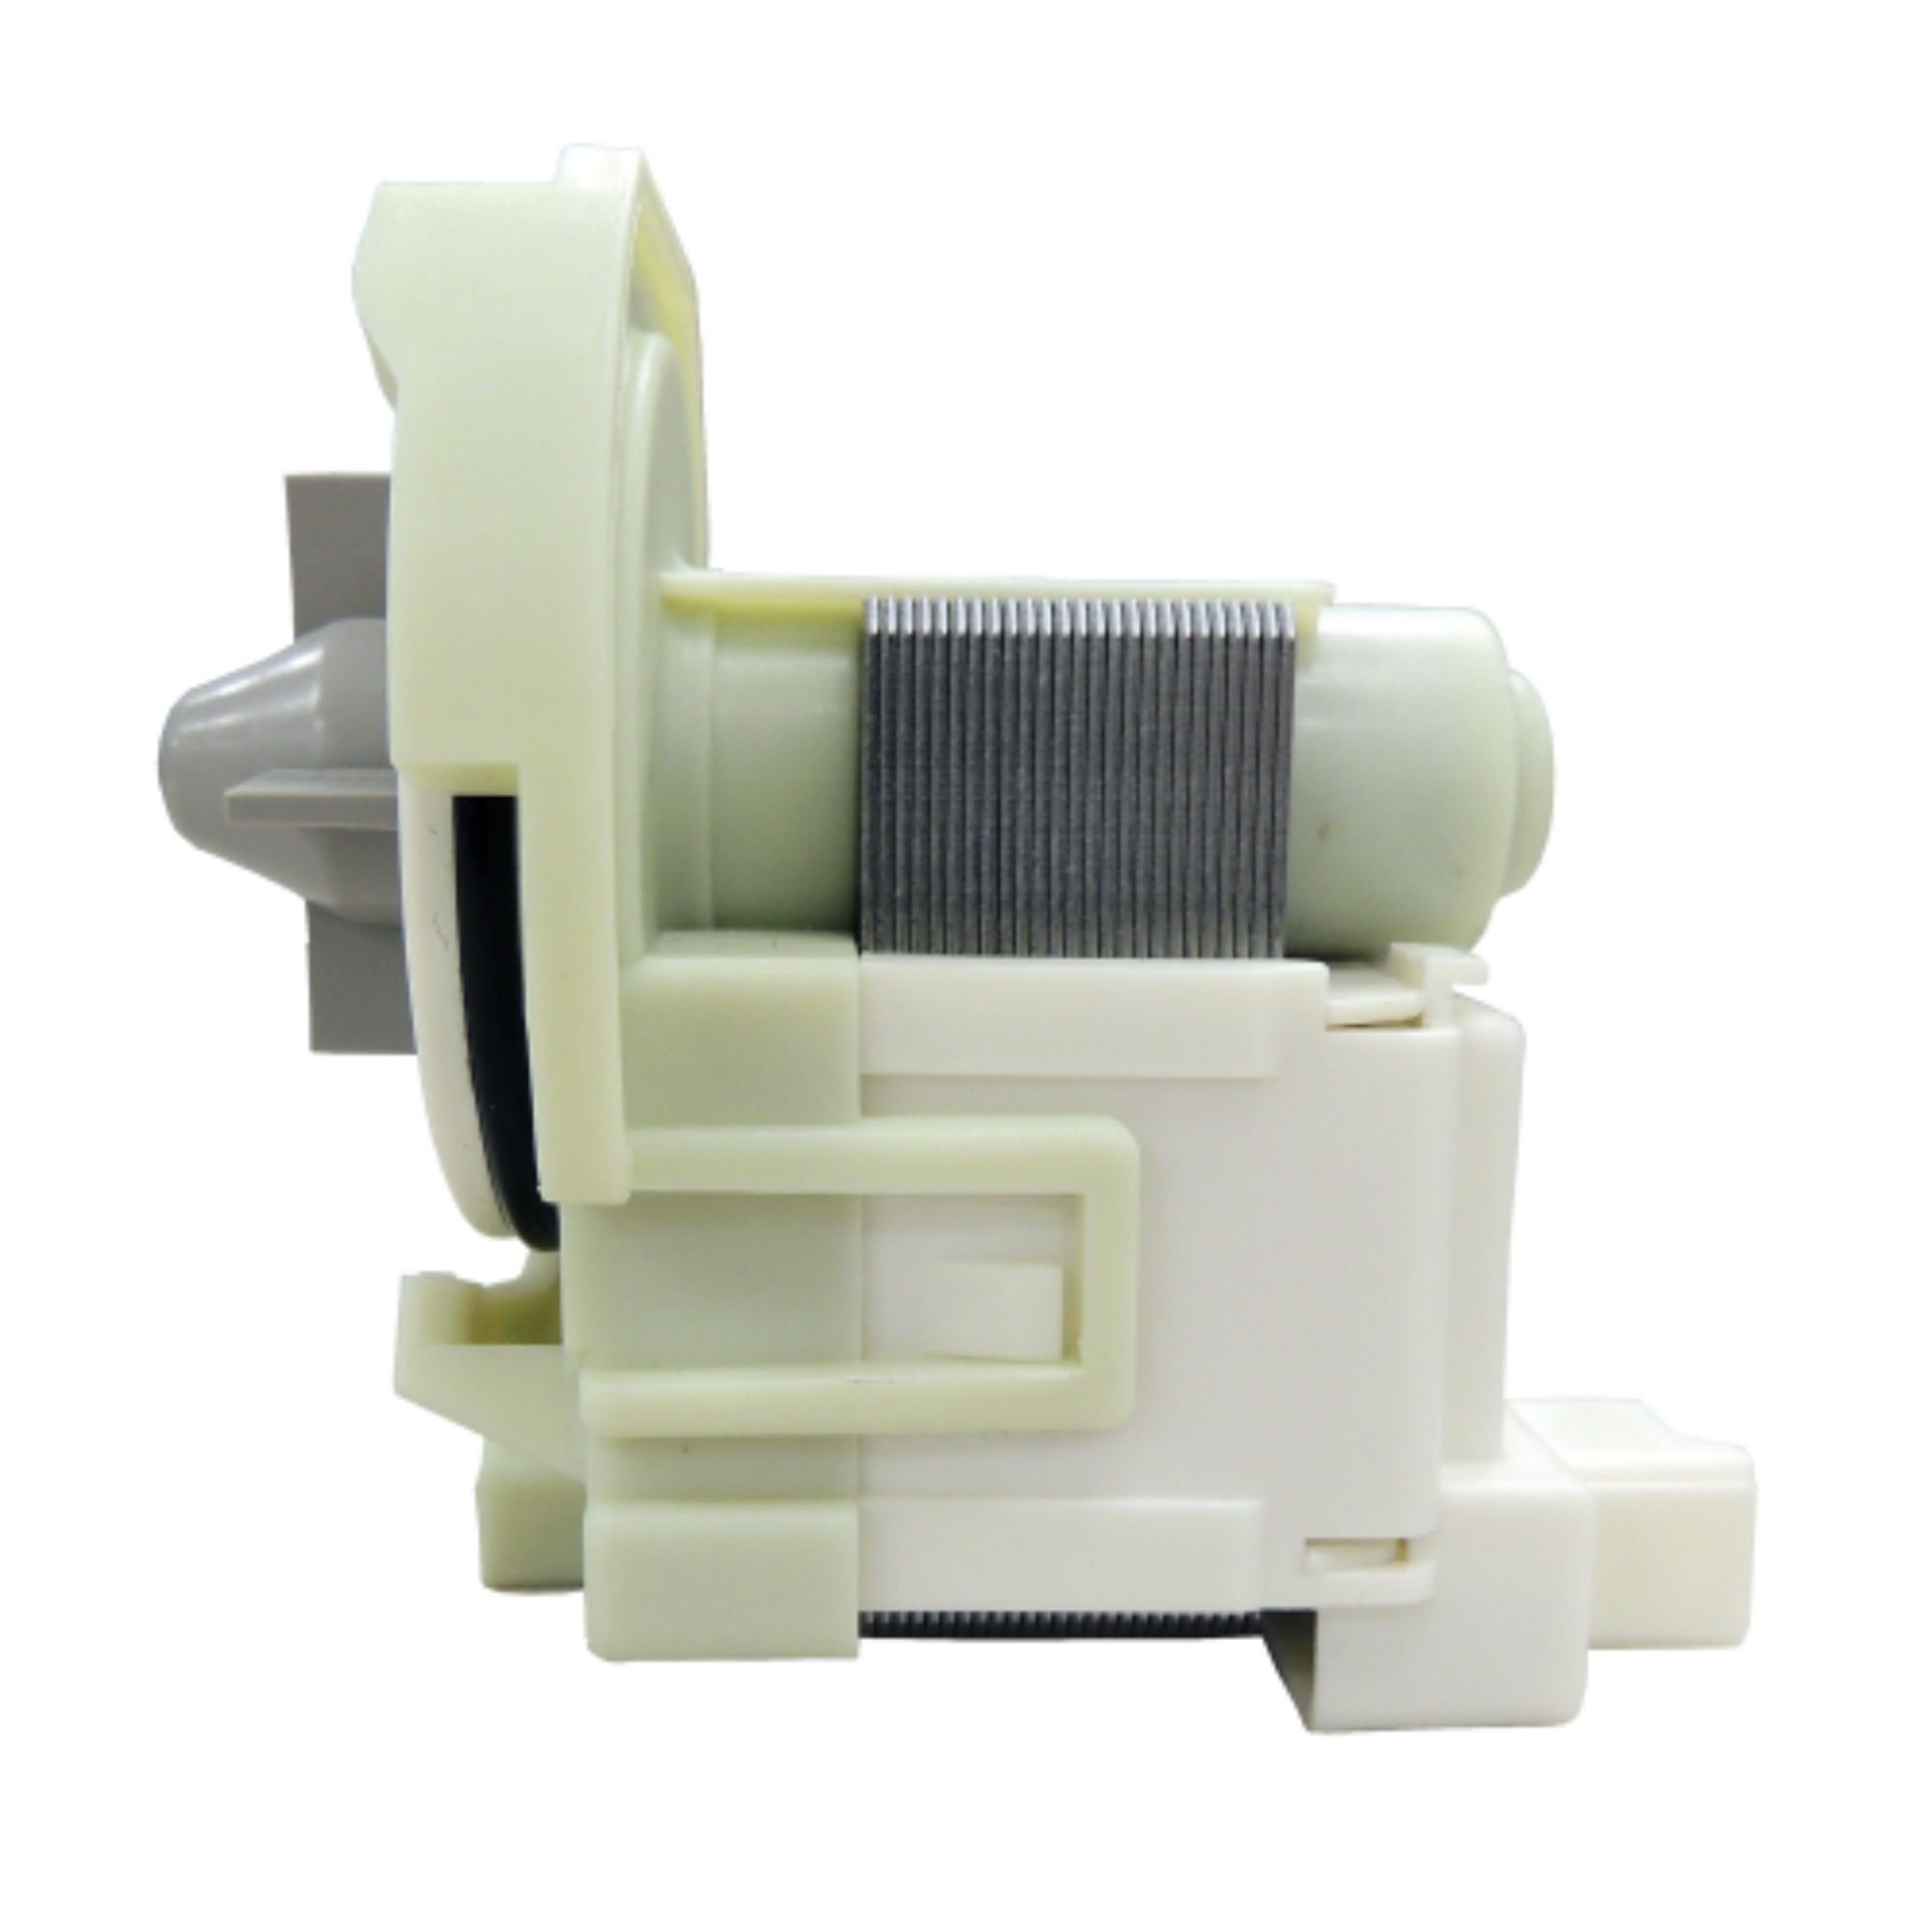 Supco DW995 Dishwasher Drain Pump Assembly, Replaces Whirlpool 8558995 W10348269 by Supco (Image #1)